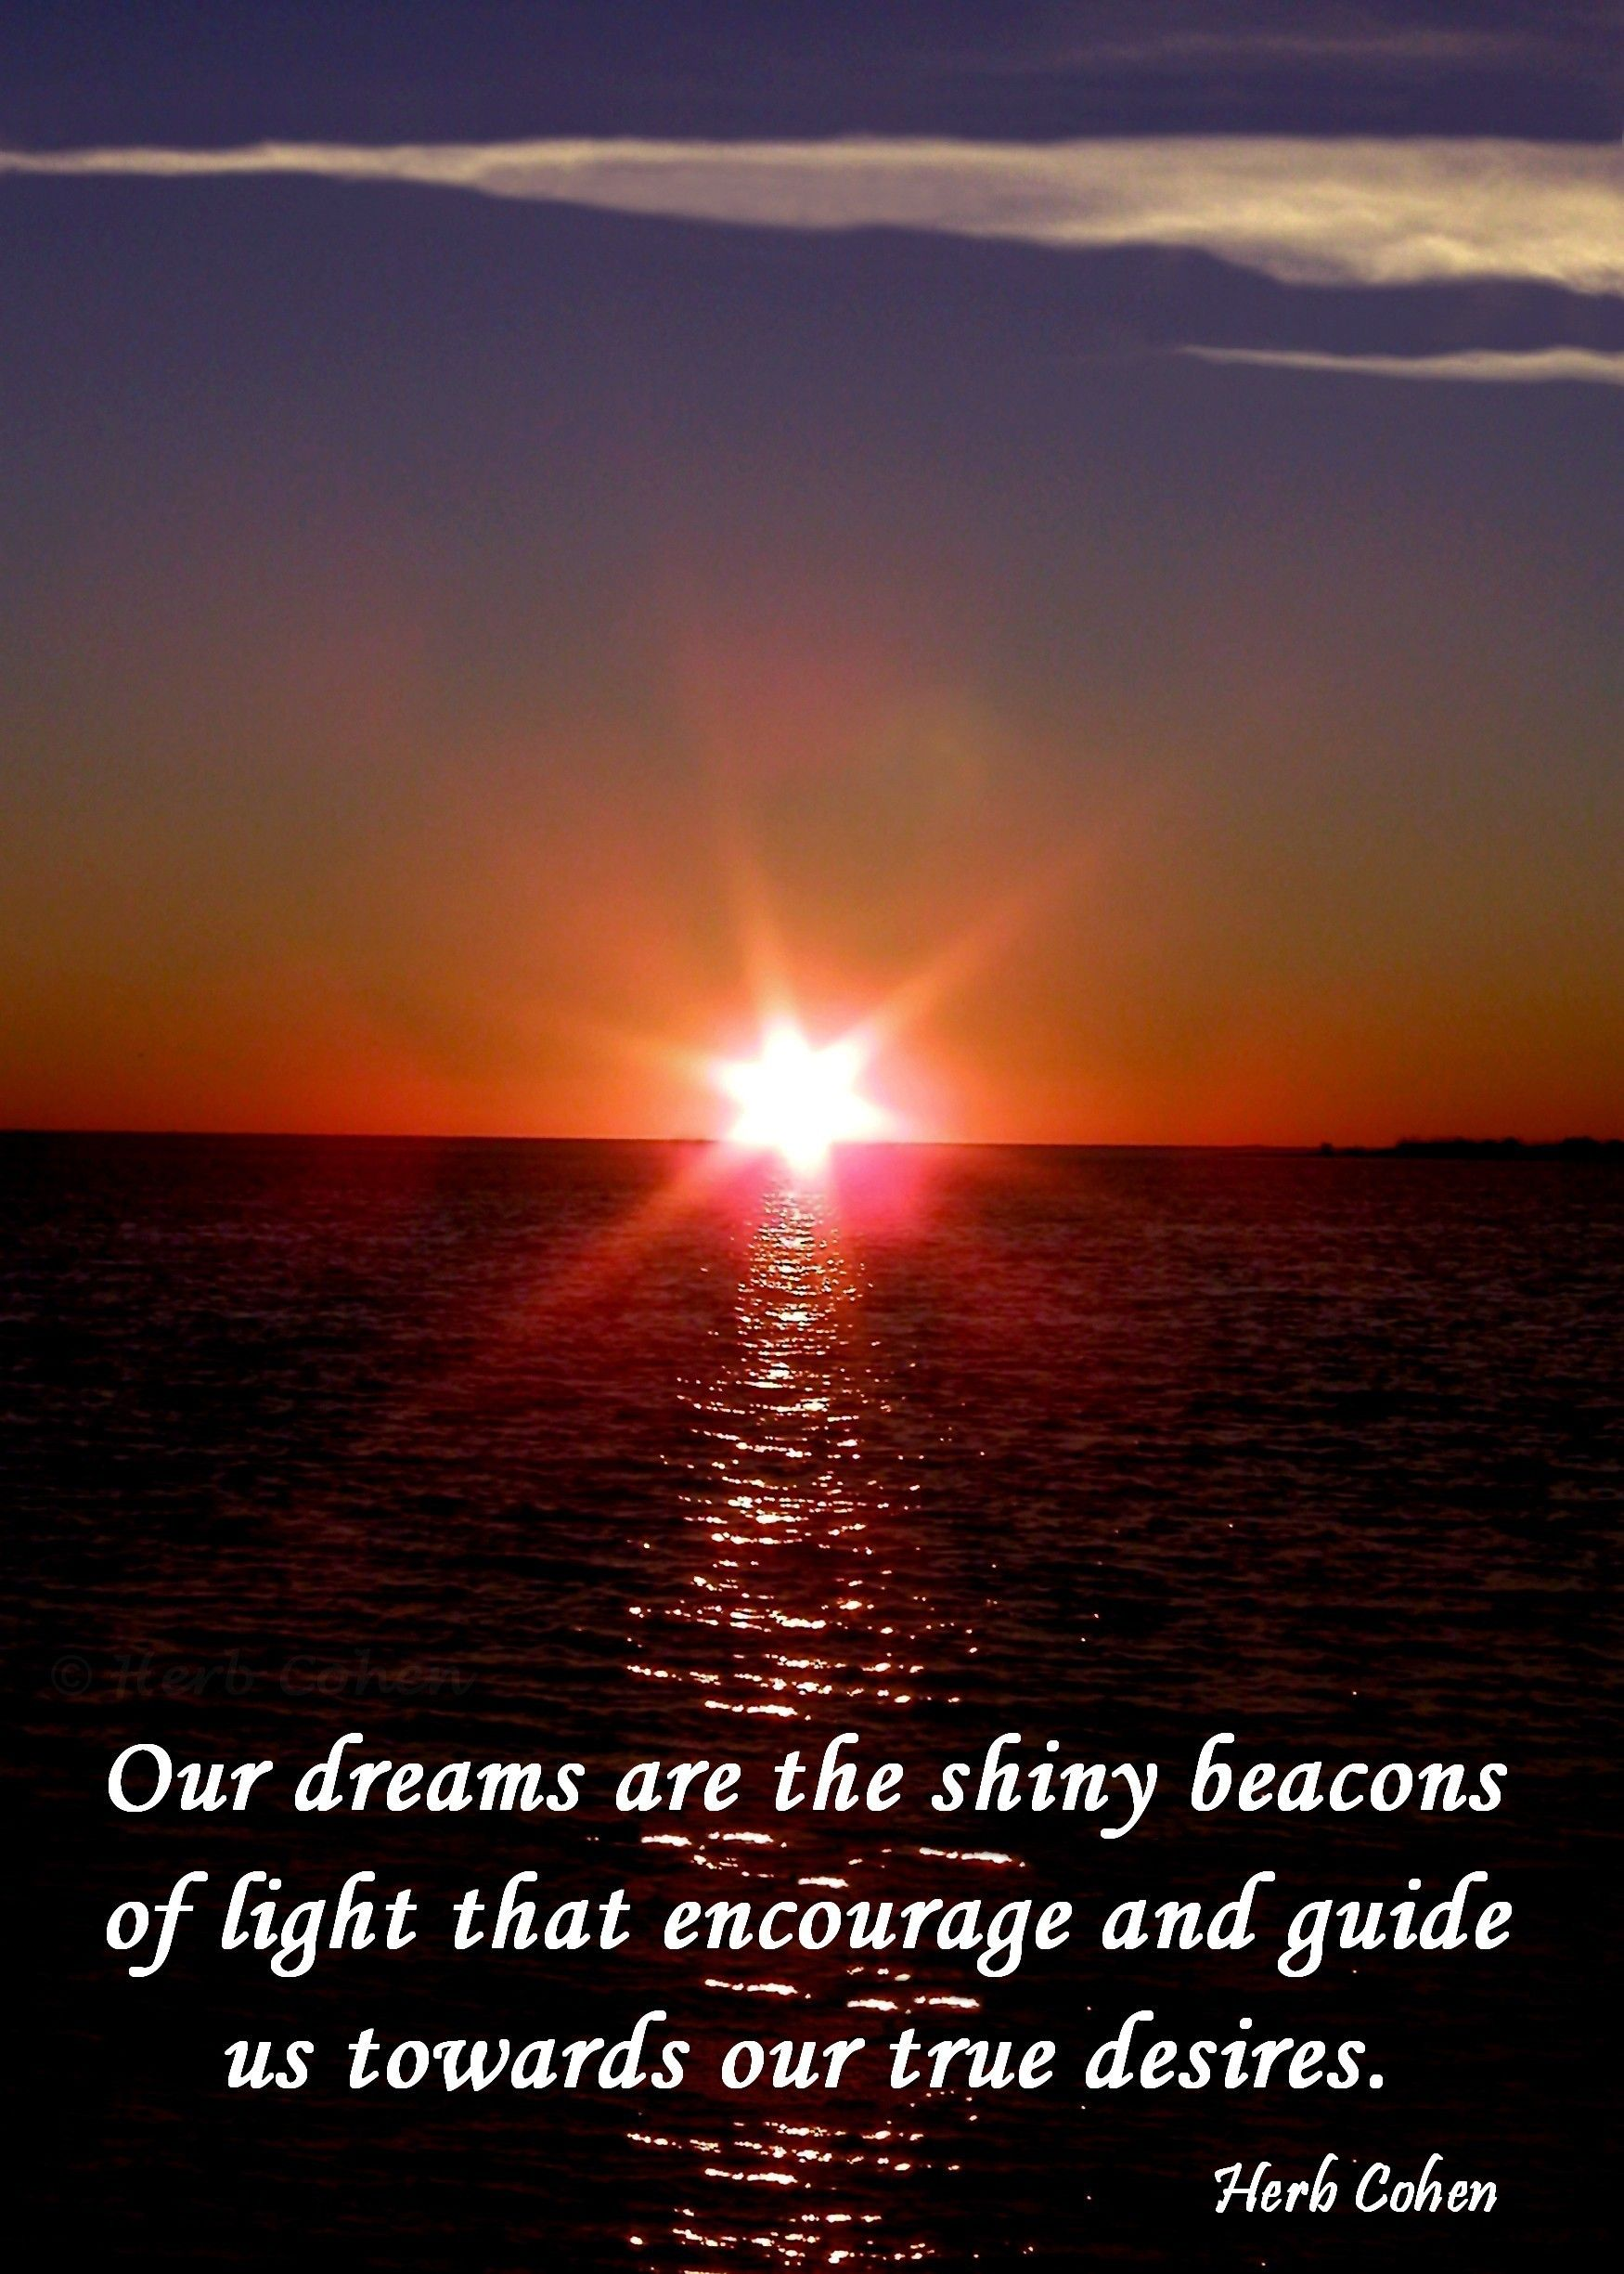 Our Dreams Are The Shiny Beacons Of Light That Encourage And Guide